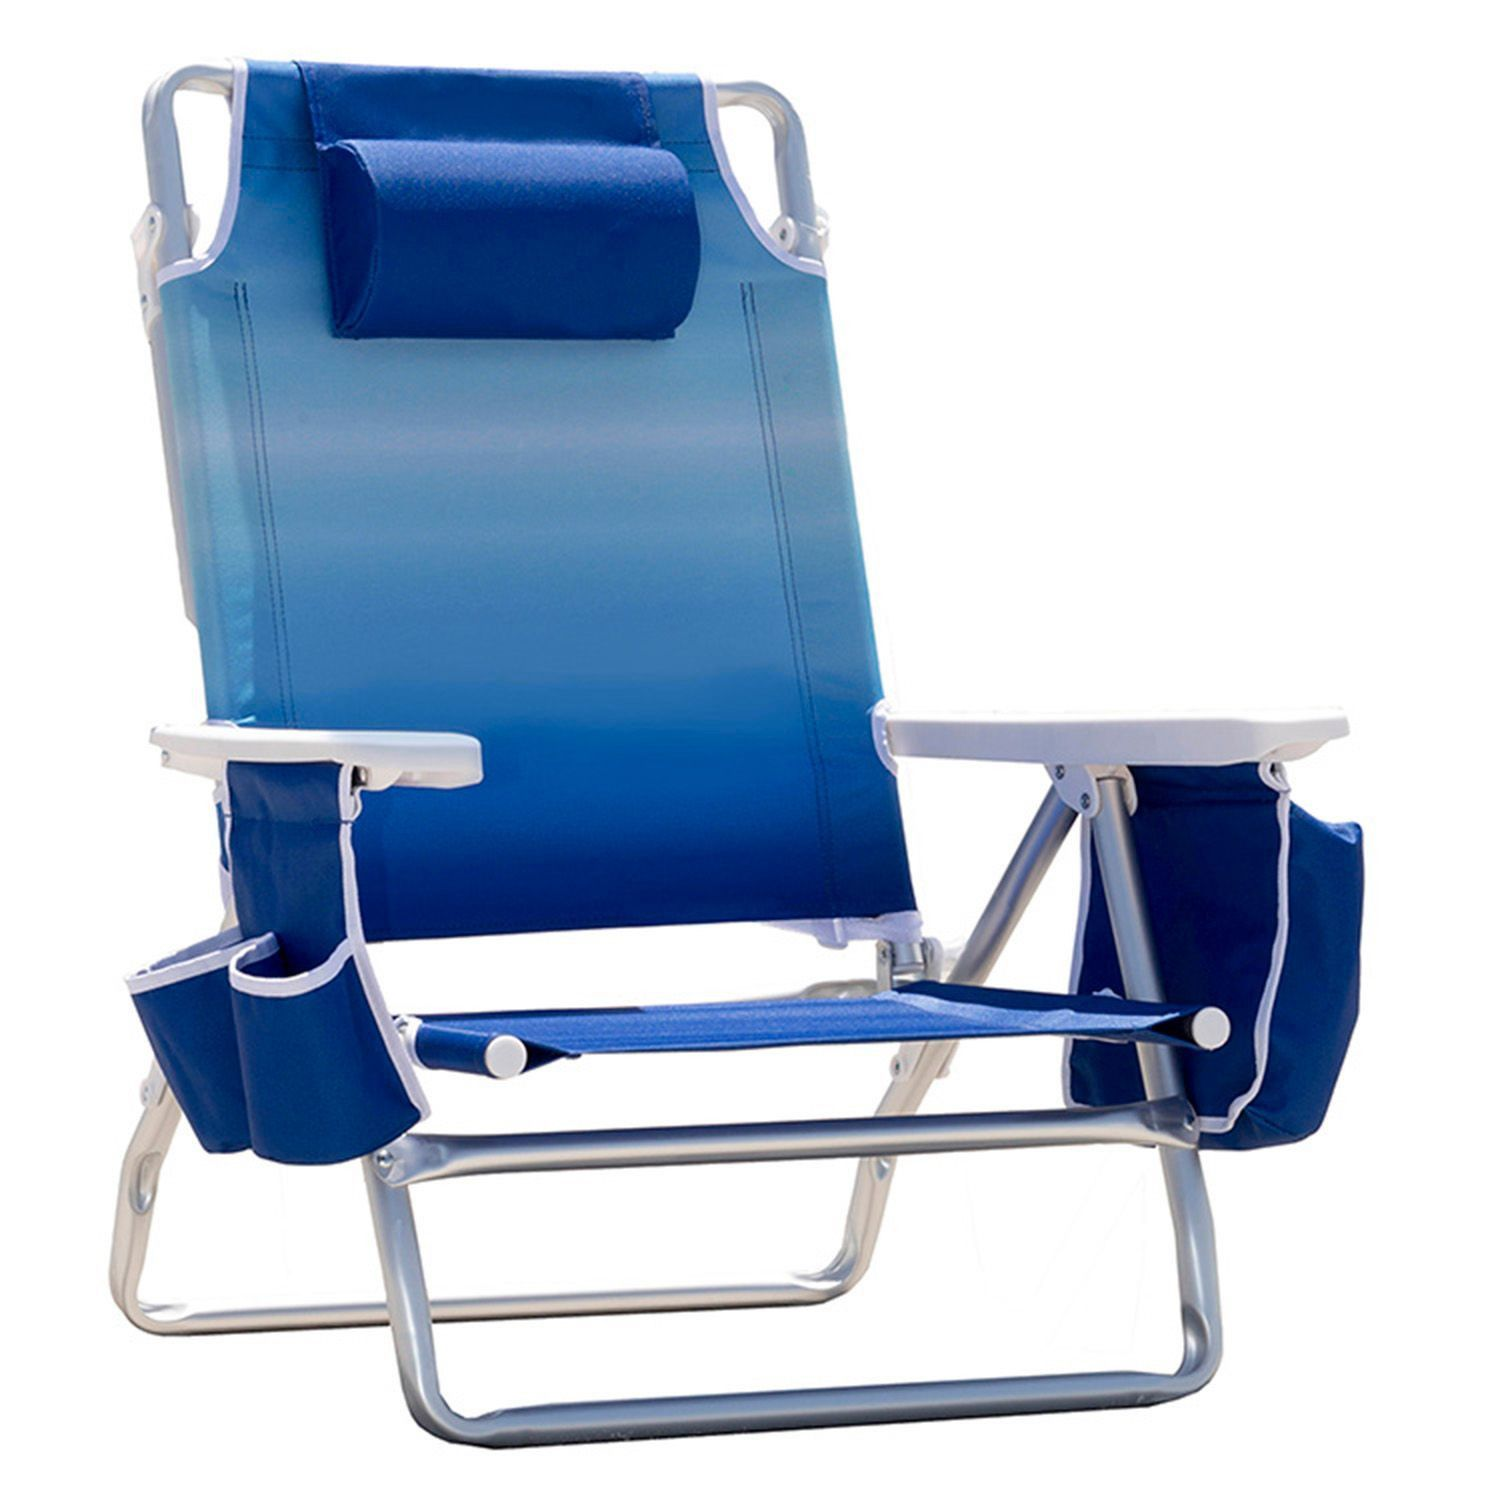 Beach Chairs With Cup Holders Folding Table And For Camping Nautica Chair W Side Cooler Pouch